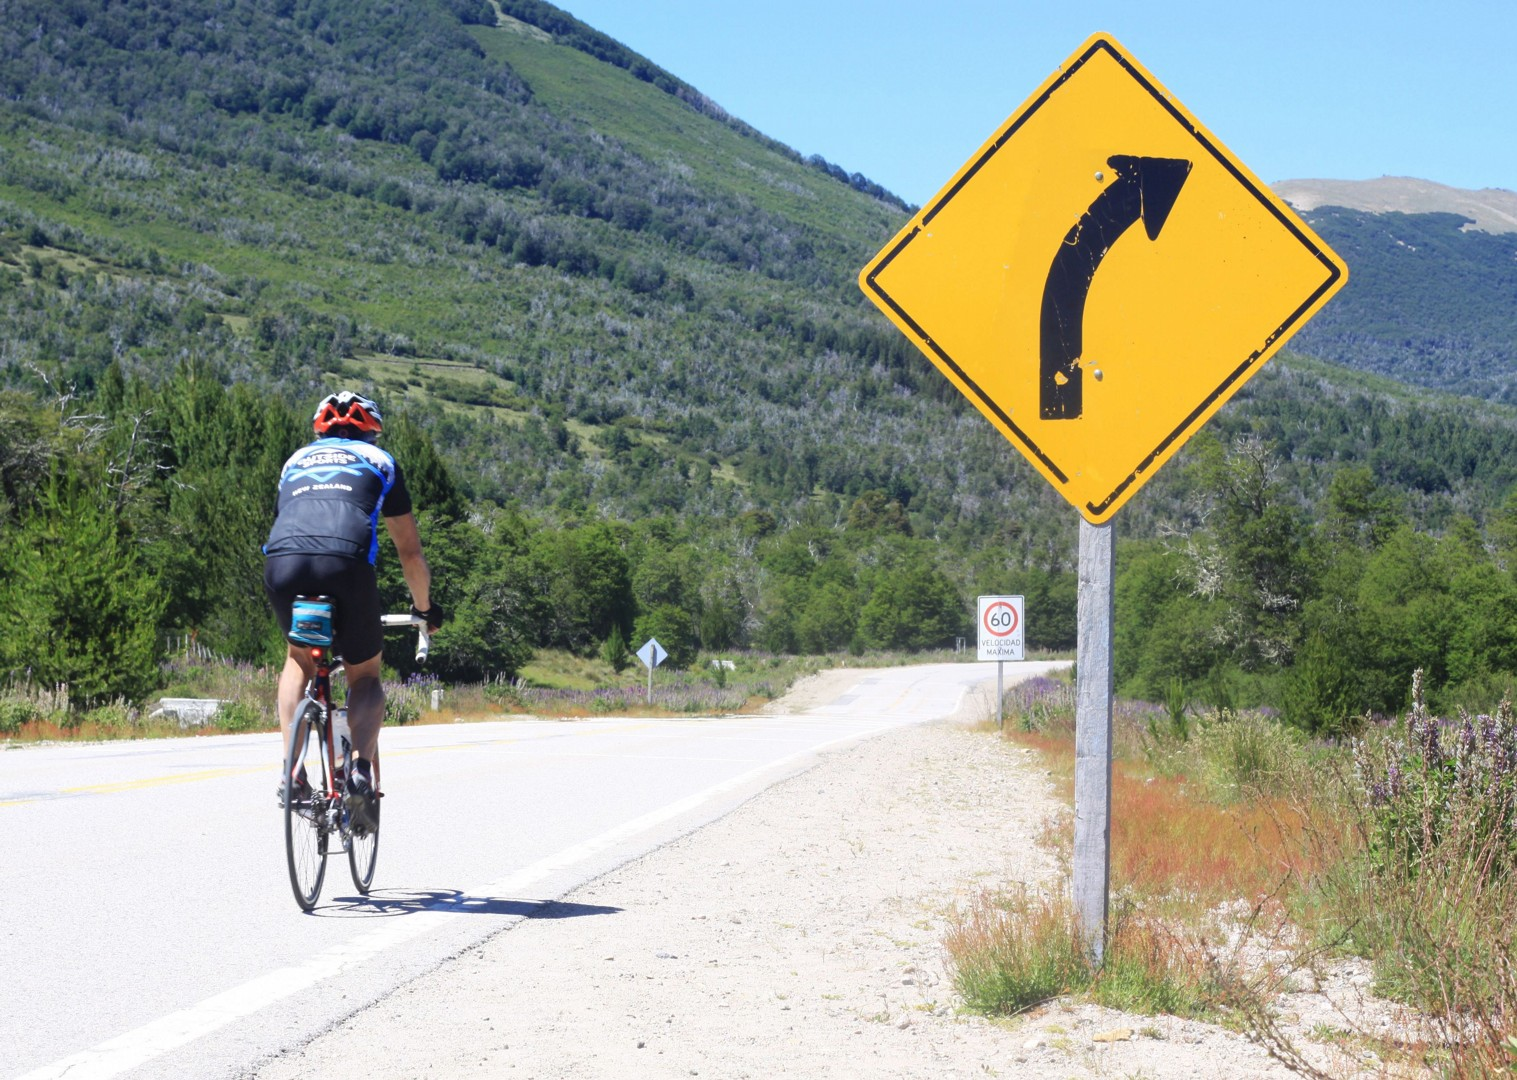 chile-and-argentina-guided-road-cycling-holiday-lake-district-explorer.jpg - Chile and Argentina - Lake District Road Explorer - Road Cycling